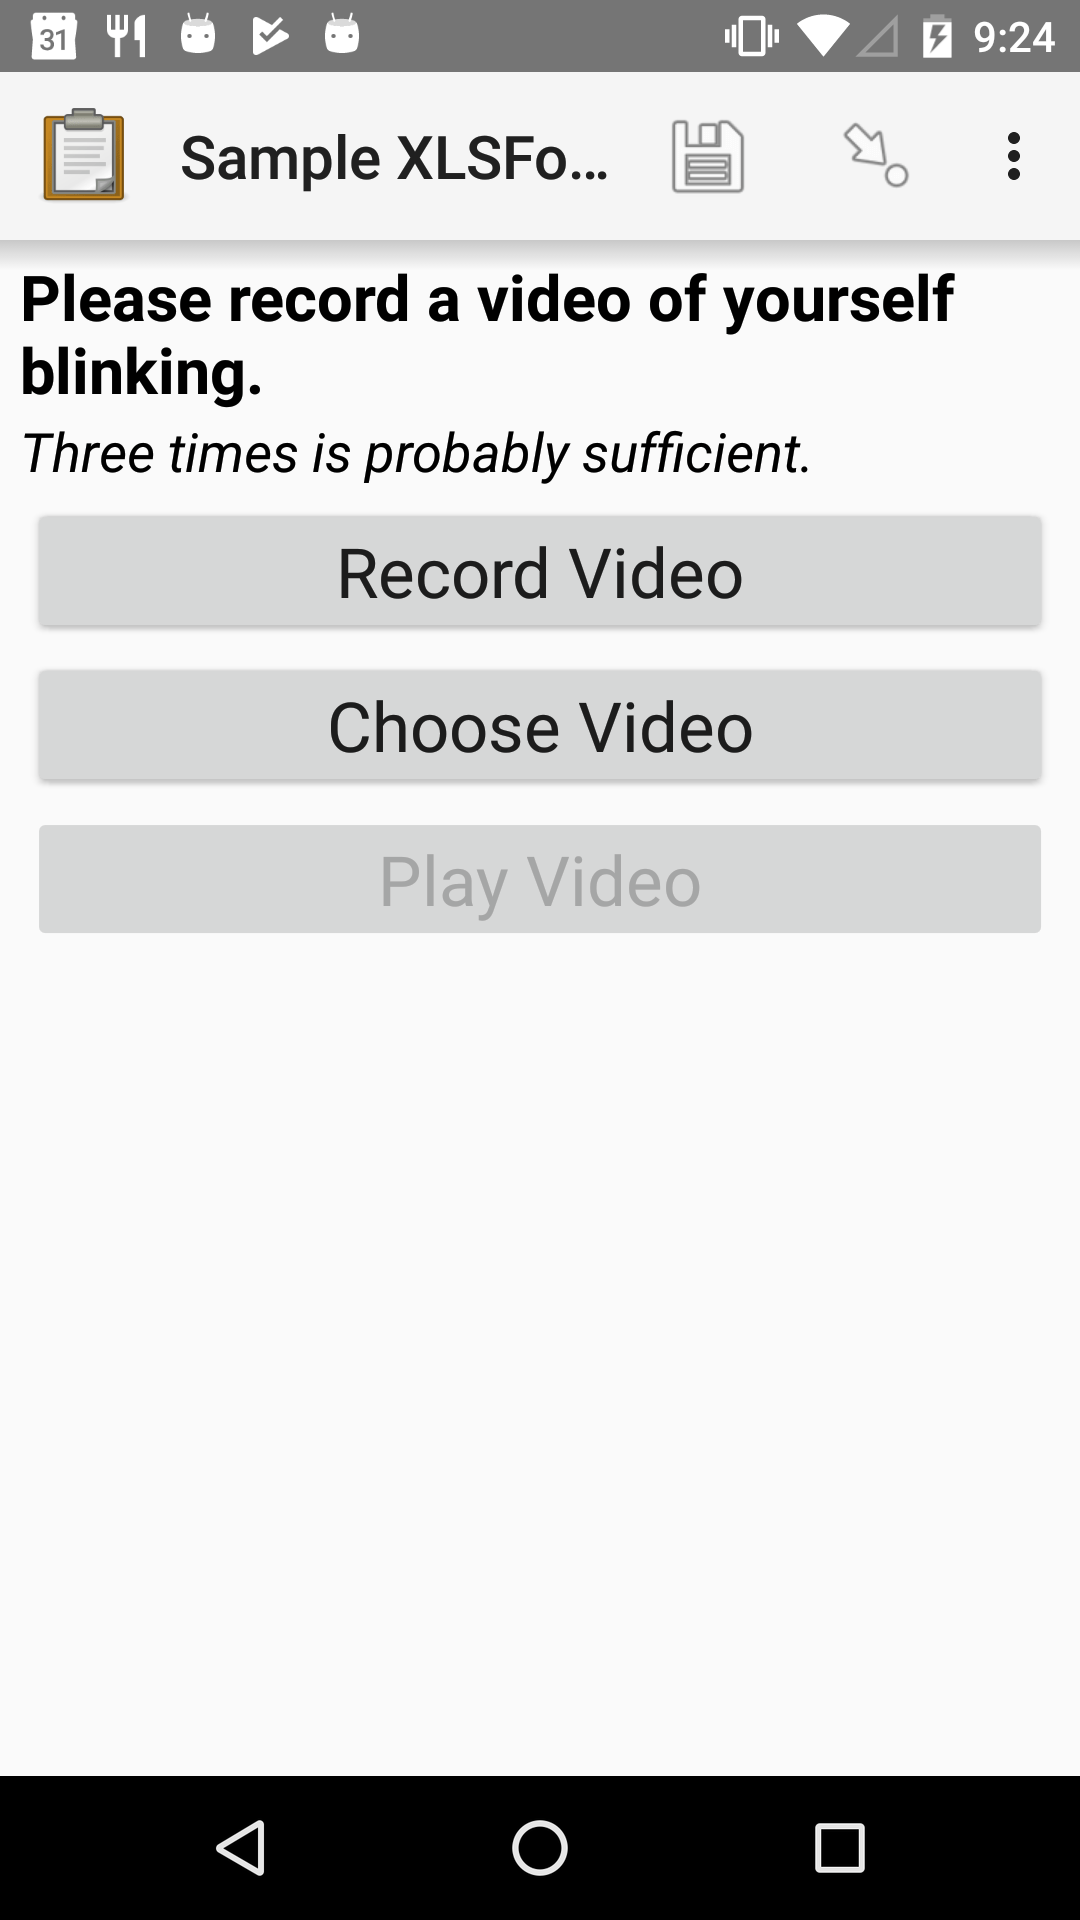 "The Video form widget as displayed in the ODK Collect App on an Android phone. The question text is ""Please record a video of yourself blinking."" The hint text is ""Three times is probably sufficient."" Below that are three buttons: Record Video, Choose Video, and Play Video. The Play Video button is disabled."